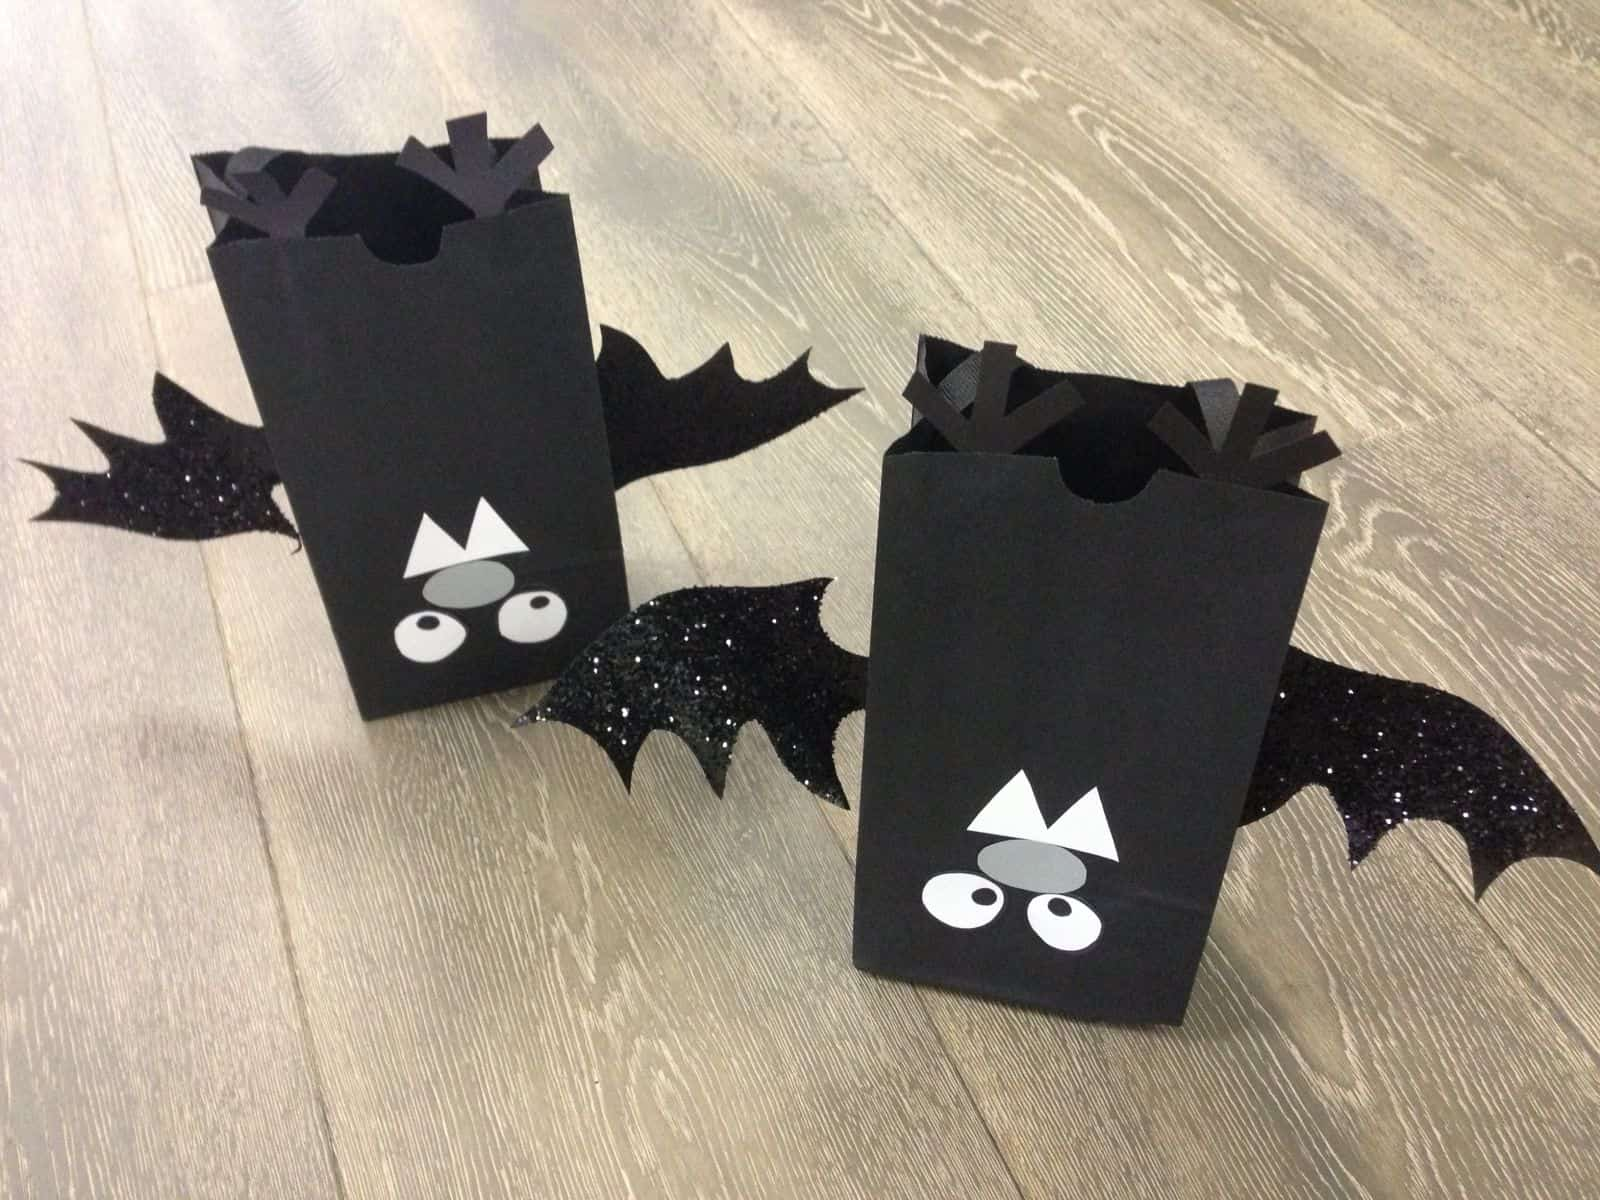 Upside down bat candy bags